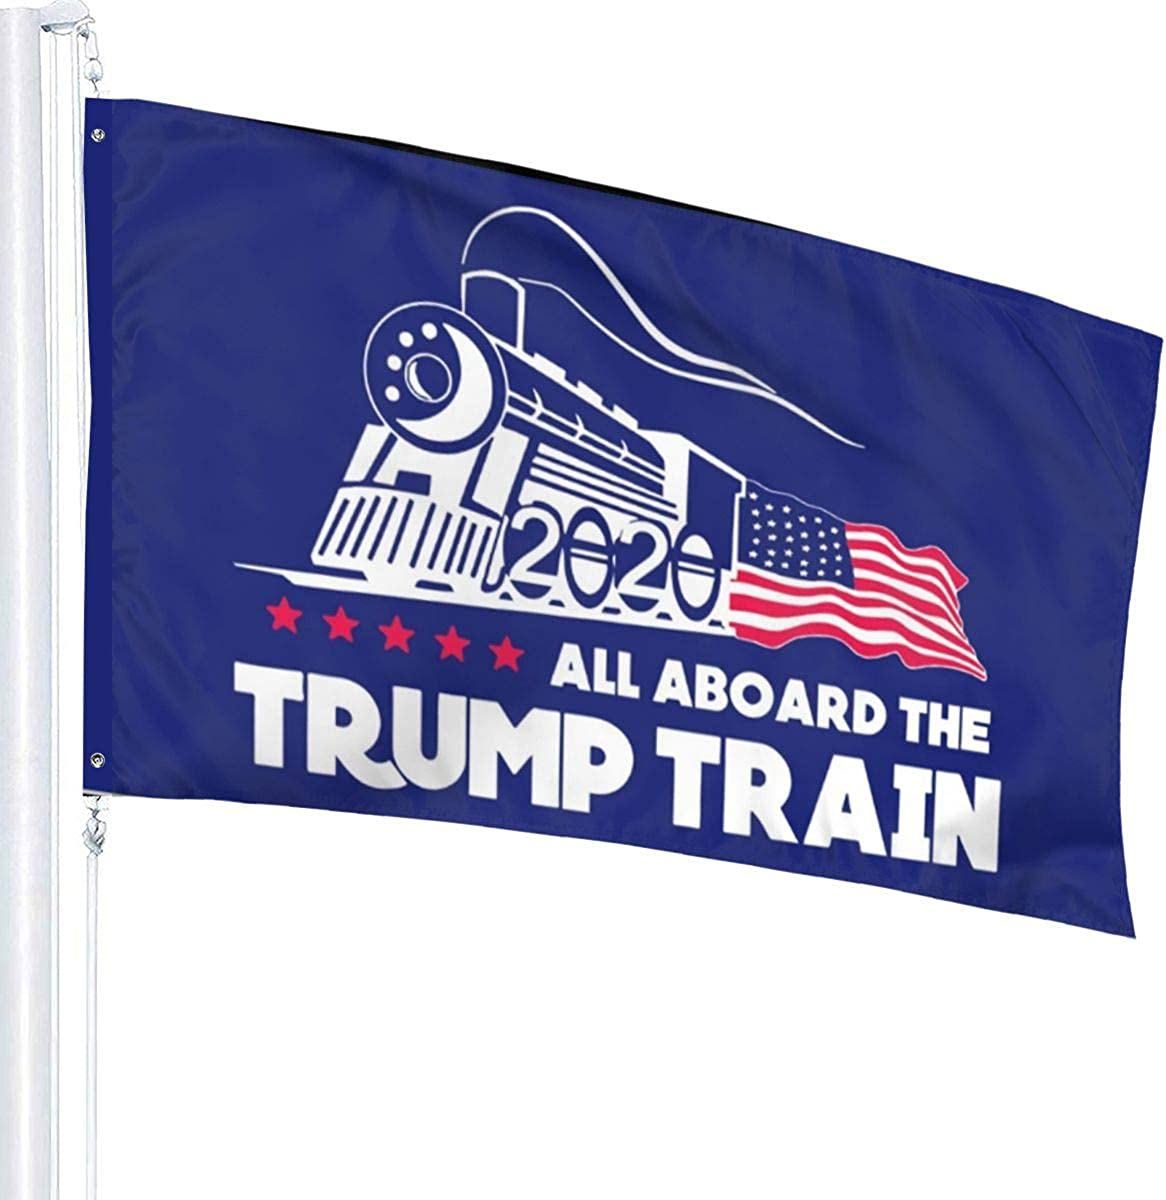 PT/&CM Pack All Aboard The Trump Train Flag Durable Color Polyester with Brass Eyelet3x5 Reinforced Double Stitch Canvas Edge